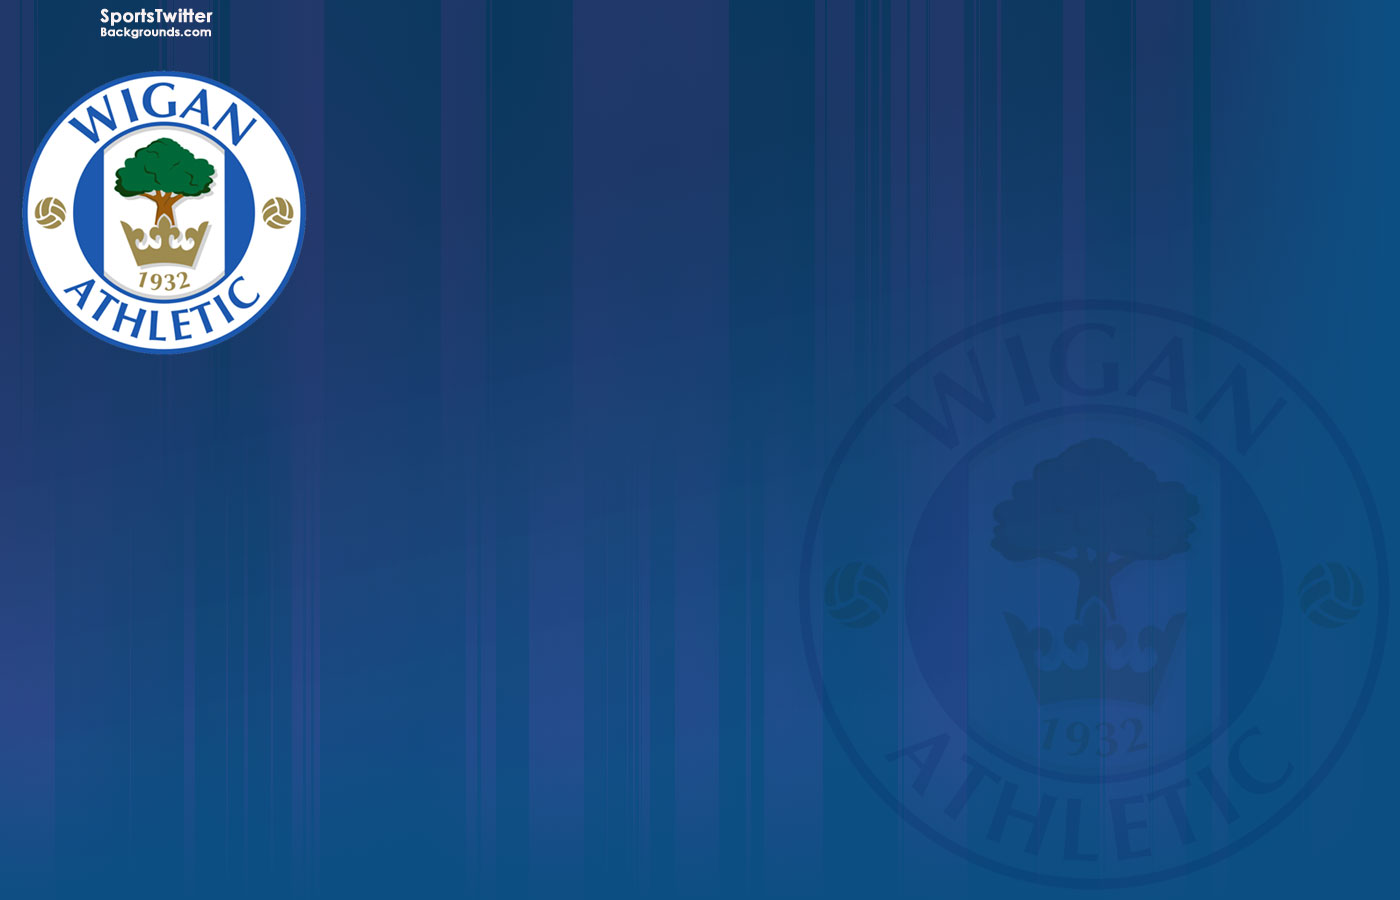 http://3.bp.blogspot.com/-tsMV2wW_G6g/UMn7wyBP2cI/AAAAAAAAAp8/jgFznlCTmnY/s1600/wigan-athletic+wallpaper.jpg